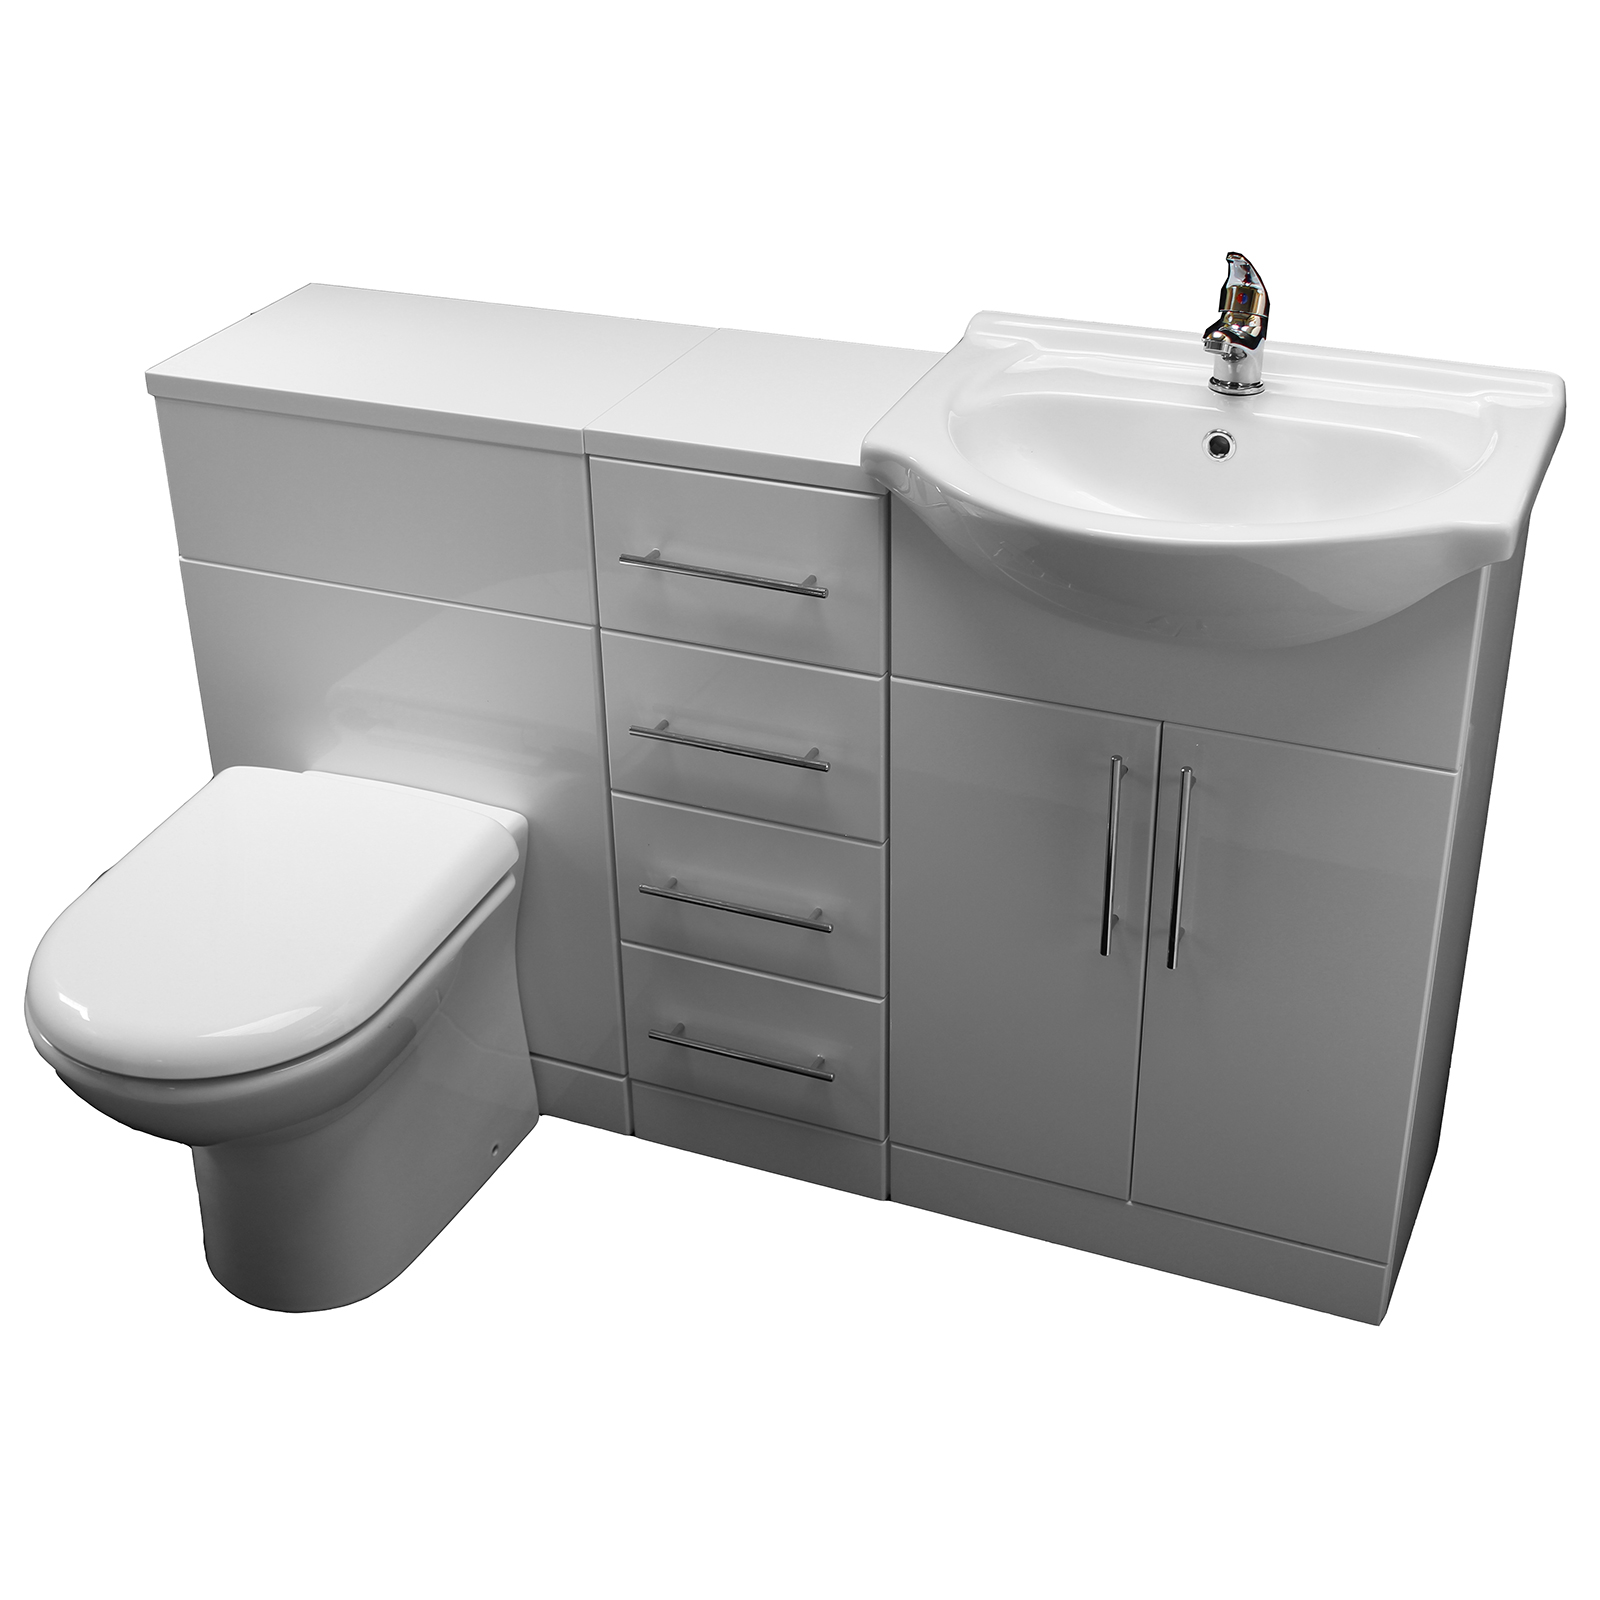 Allbits Eden White Gloss Wc Combination 550 Vanity Unit